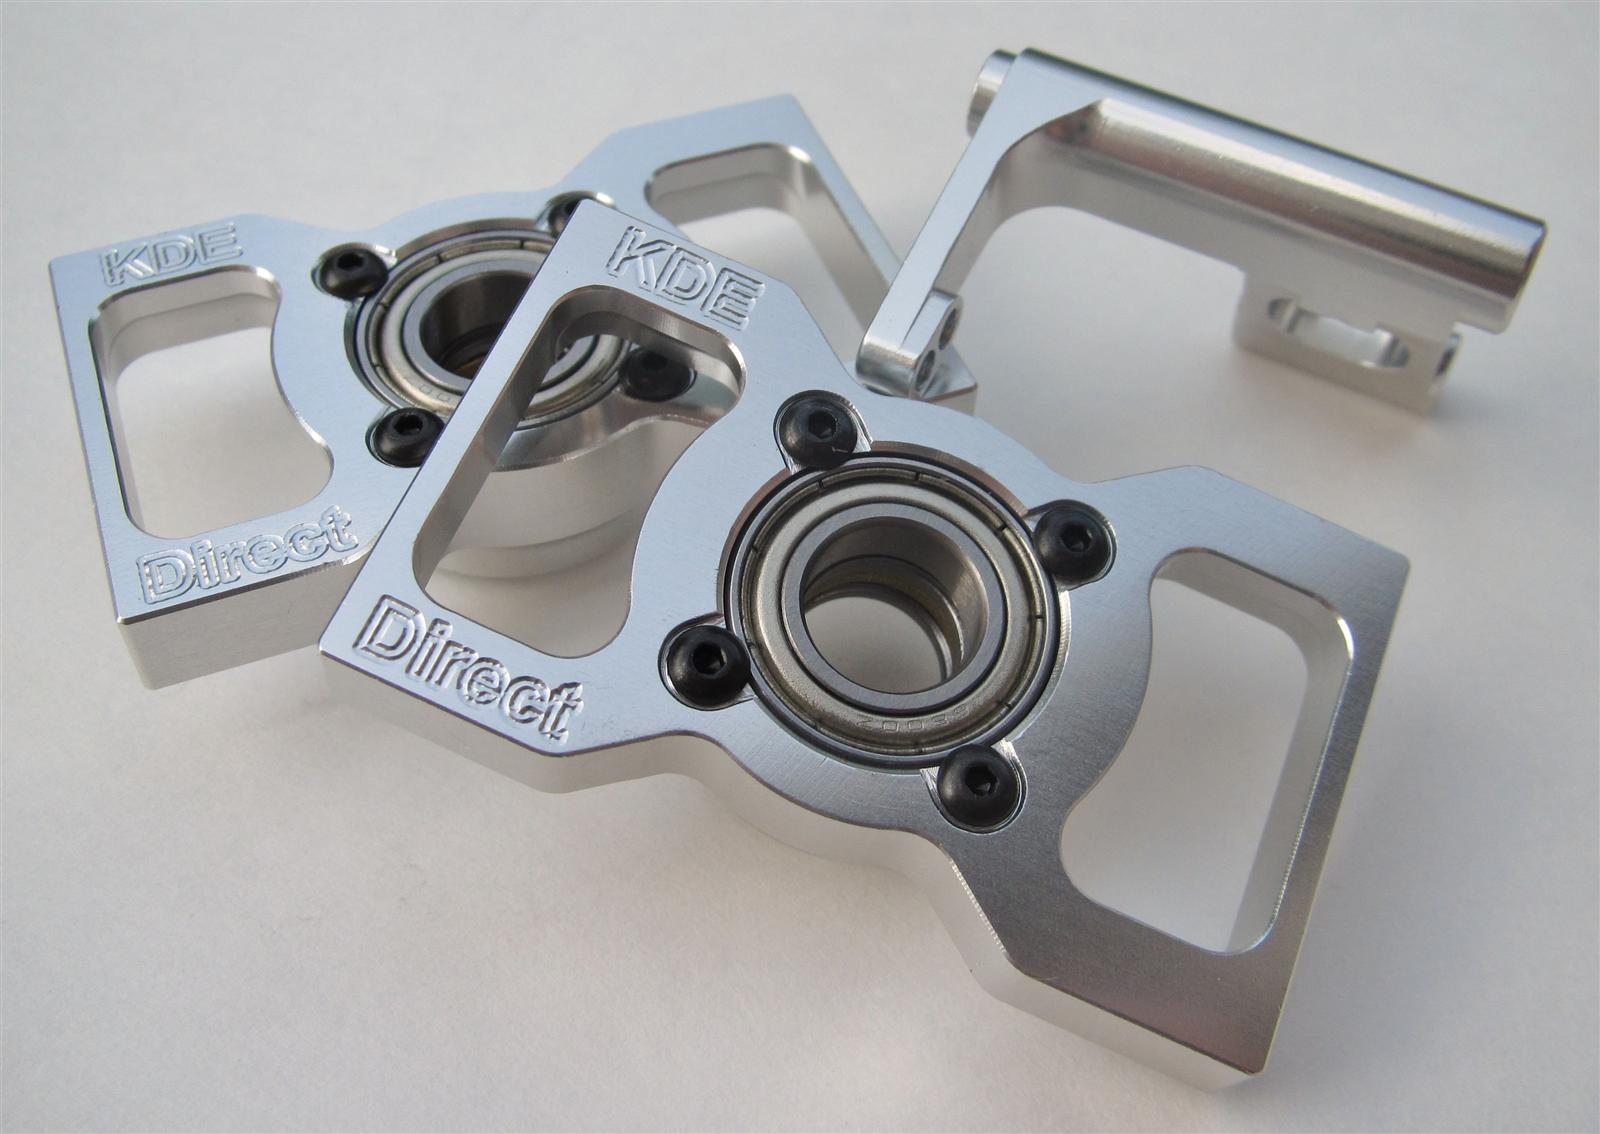 KDE Direct Thrusted Bearing Block for Terx600PRO